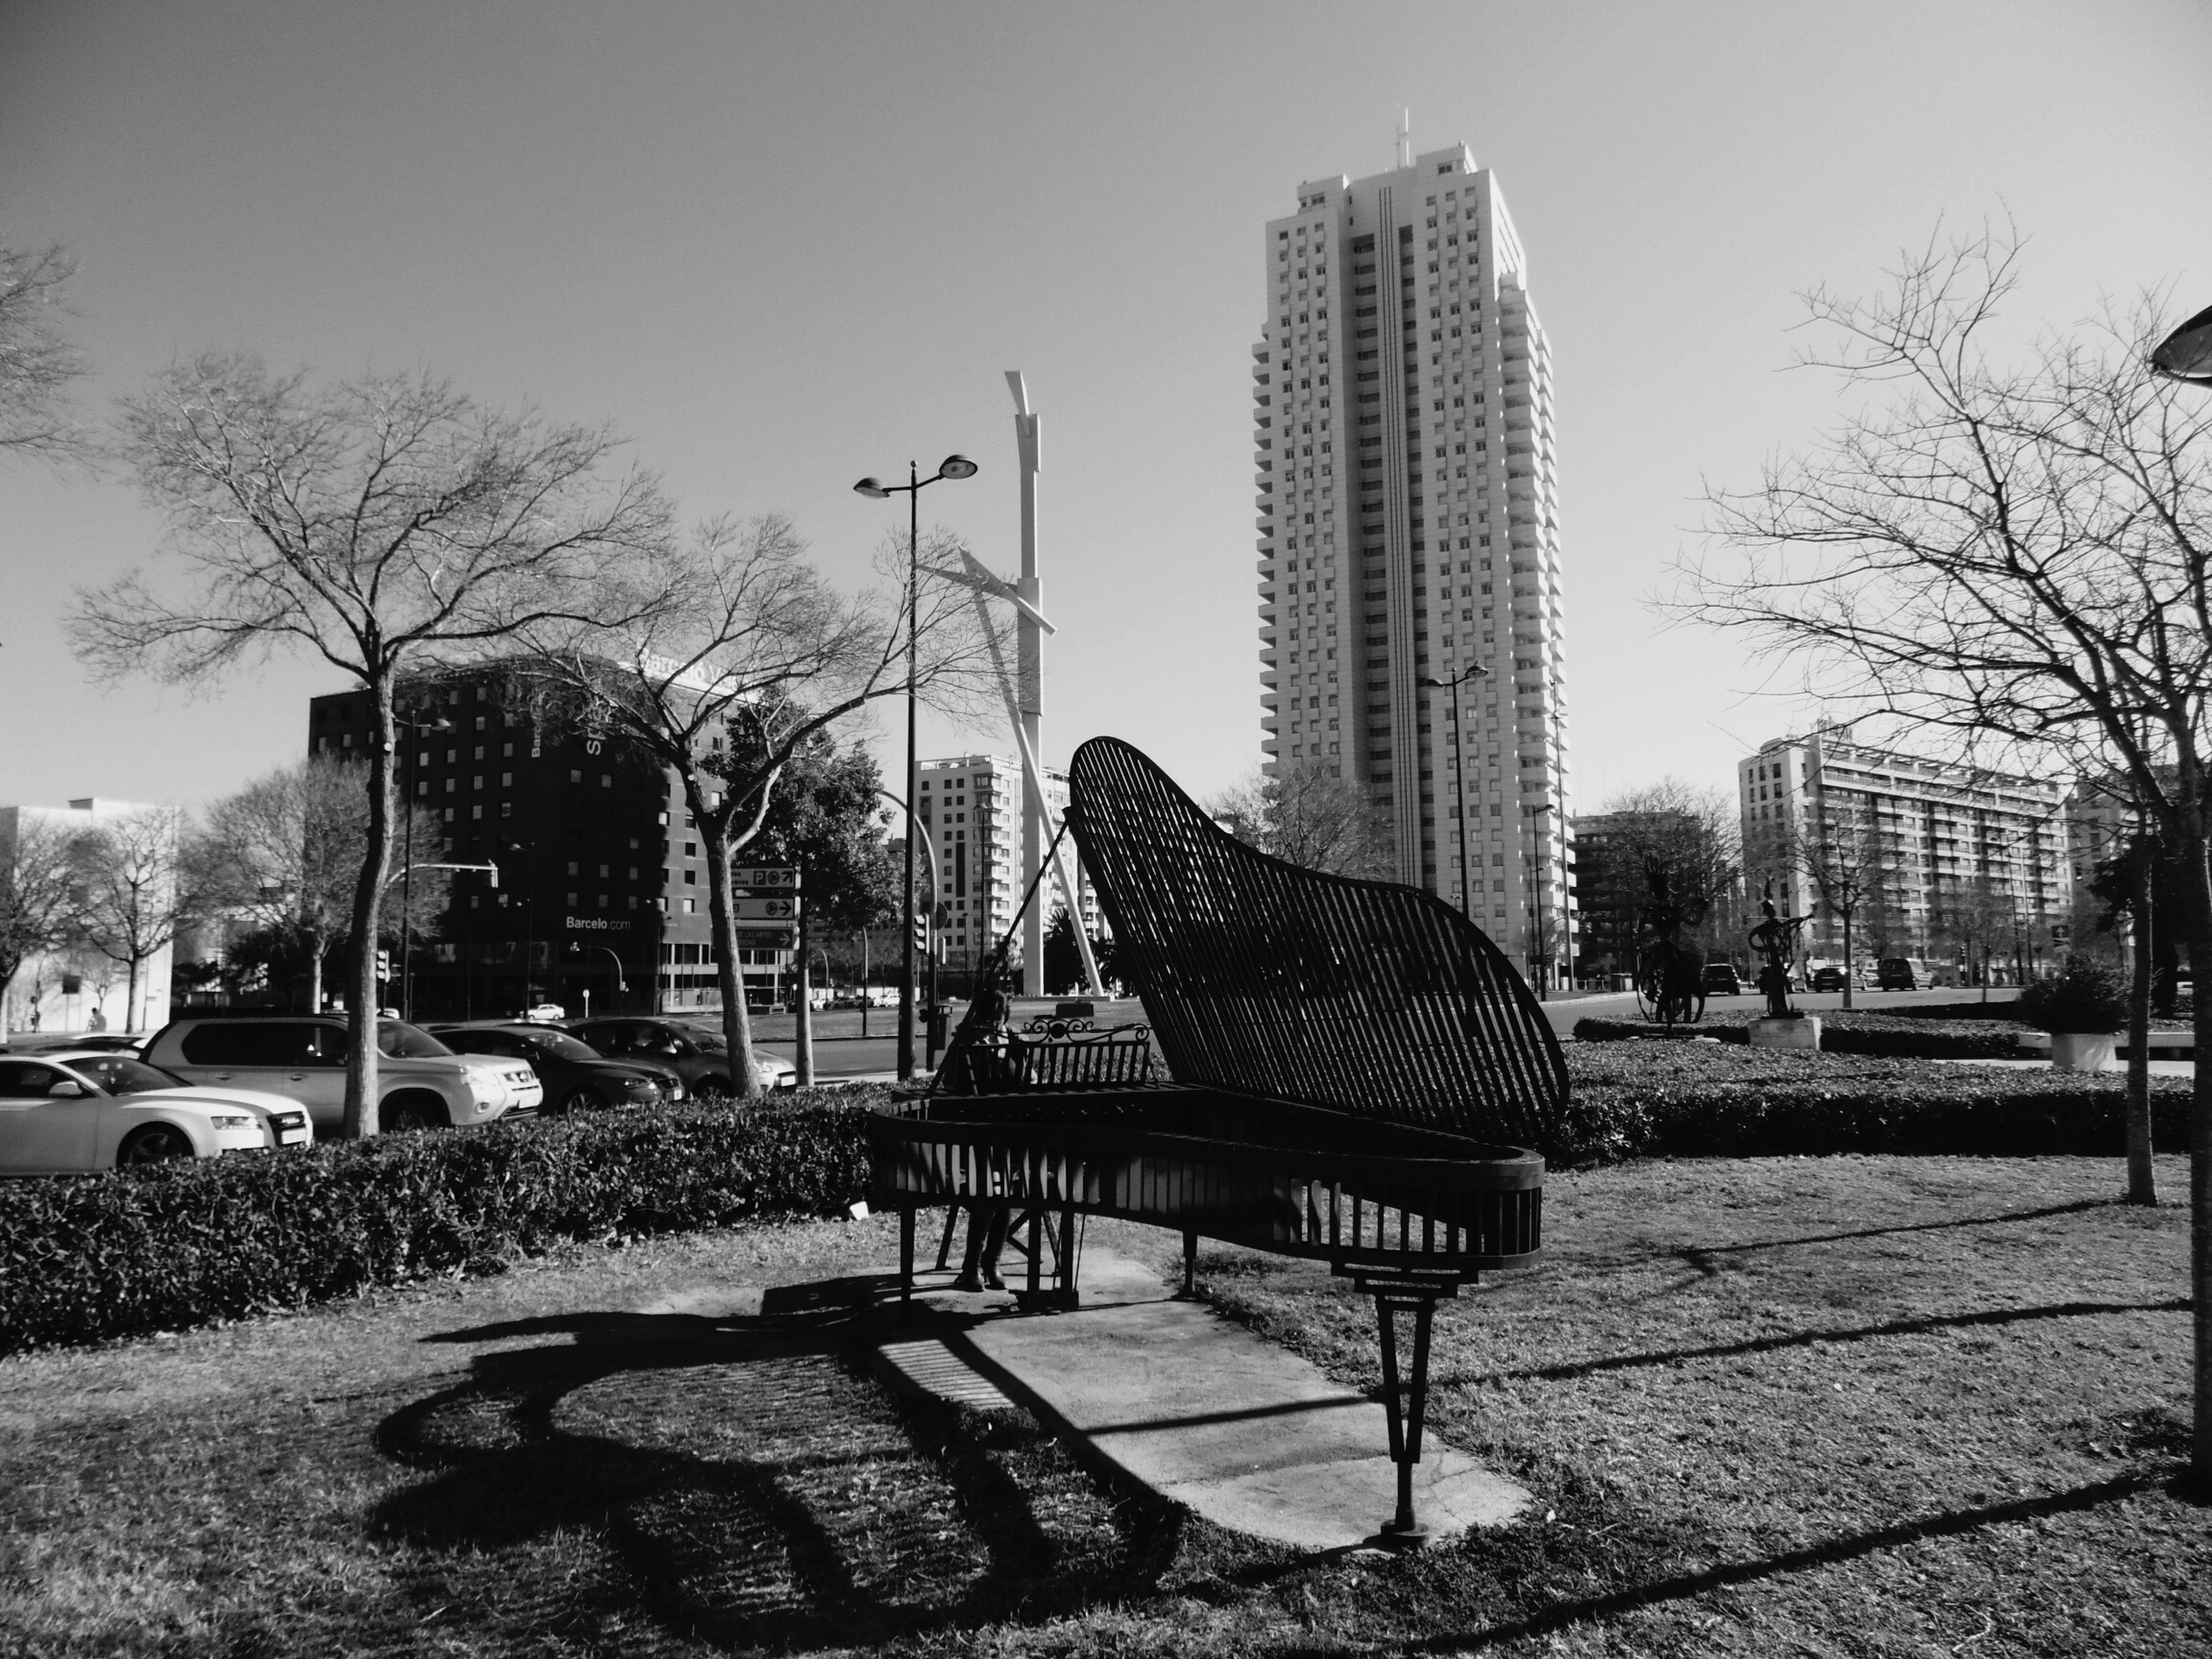 tree, building exterior, architecture, city, built structure, park - man made space, clear sky, park, chair, sky, bench, absence, sunlight, empty, modern, day, growth, outdoors, skyscraper, bare tree